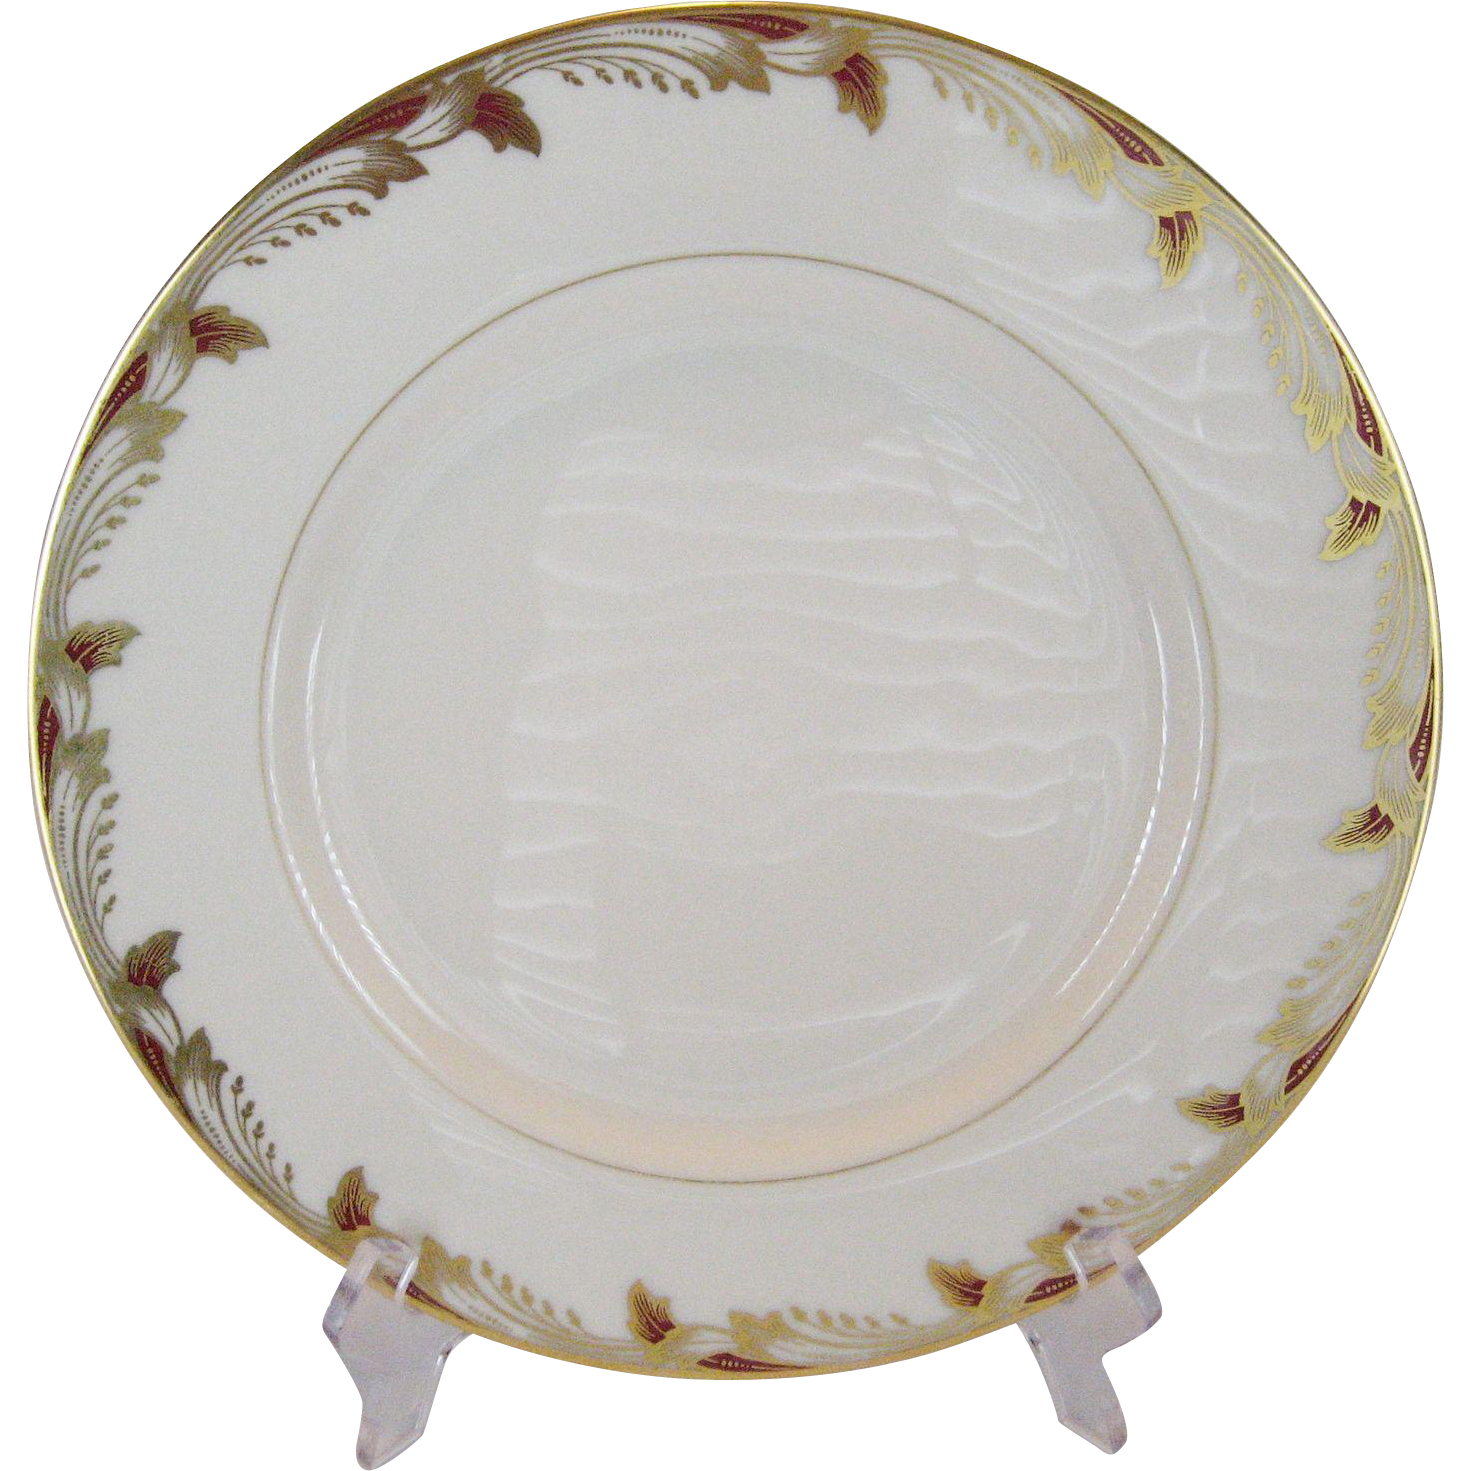 Lenox Essex Maroon Smooth Dinner Plates - 10 Available